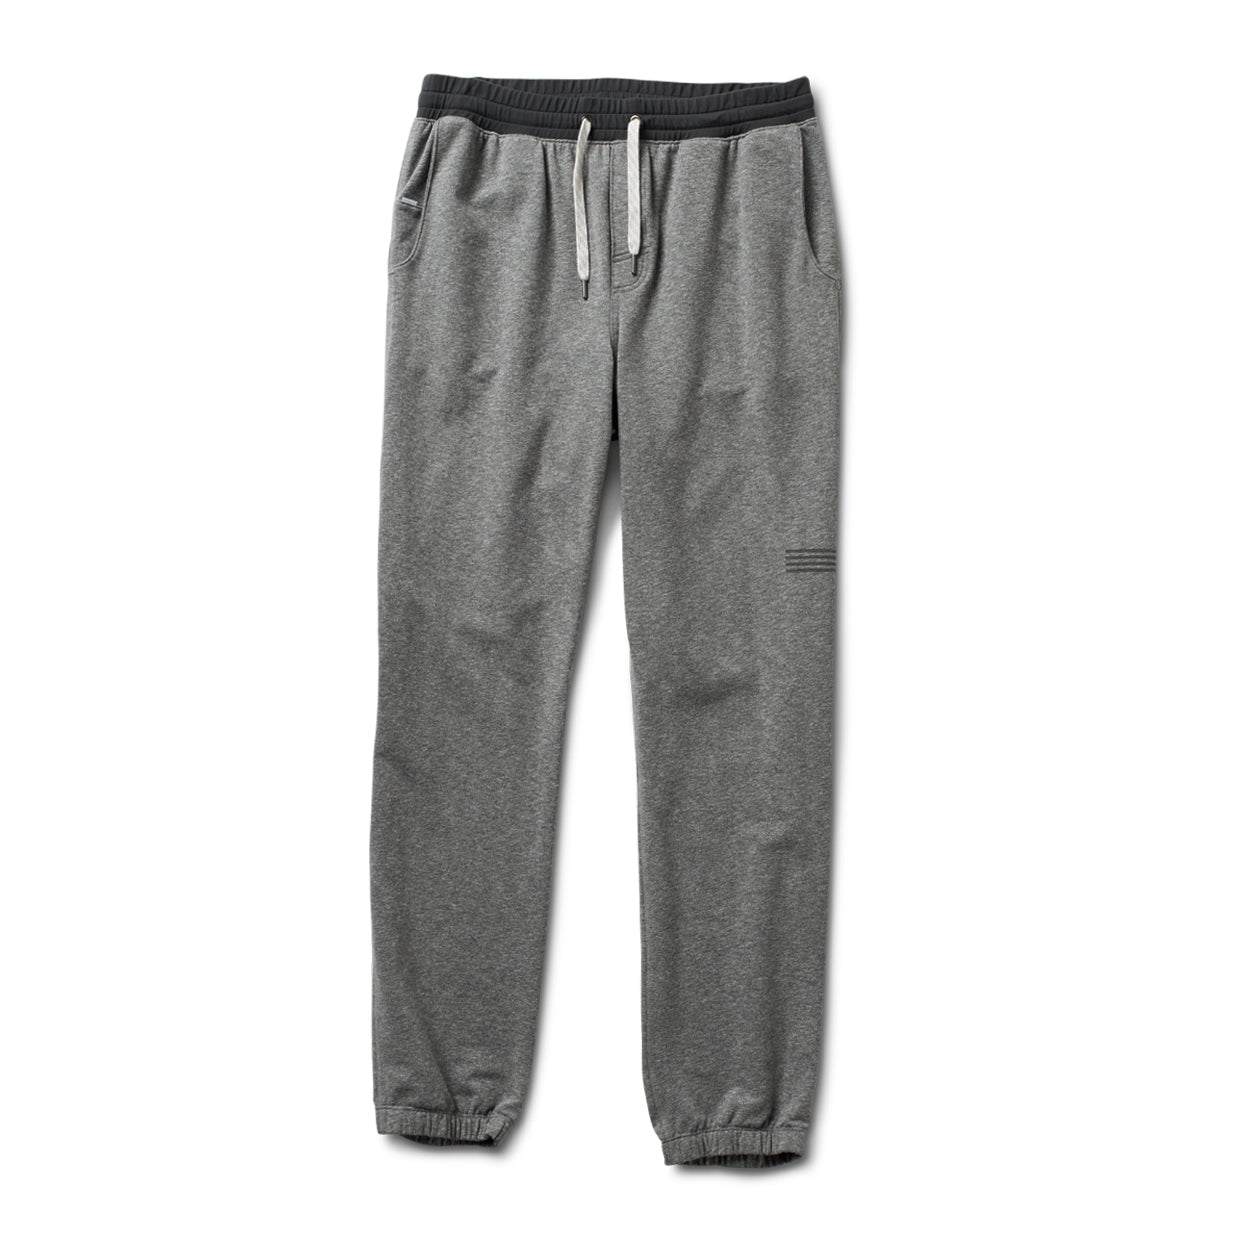 Balboa Pant | Heather Grey